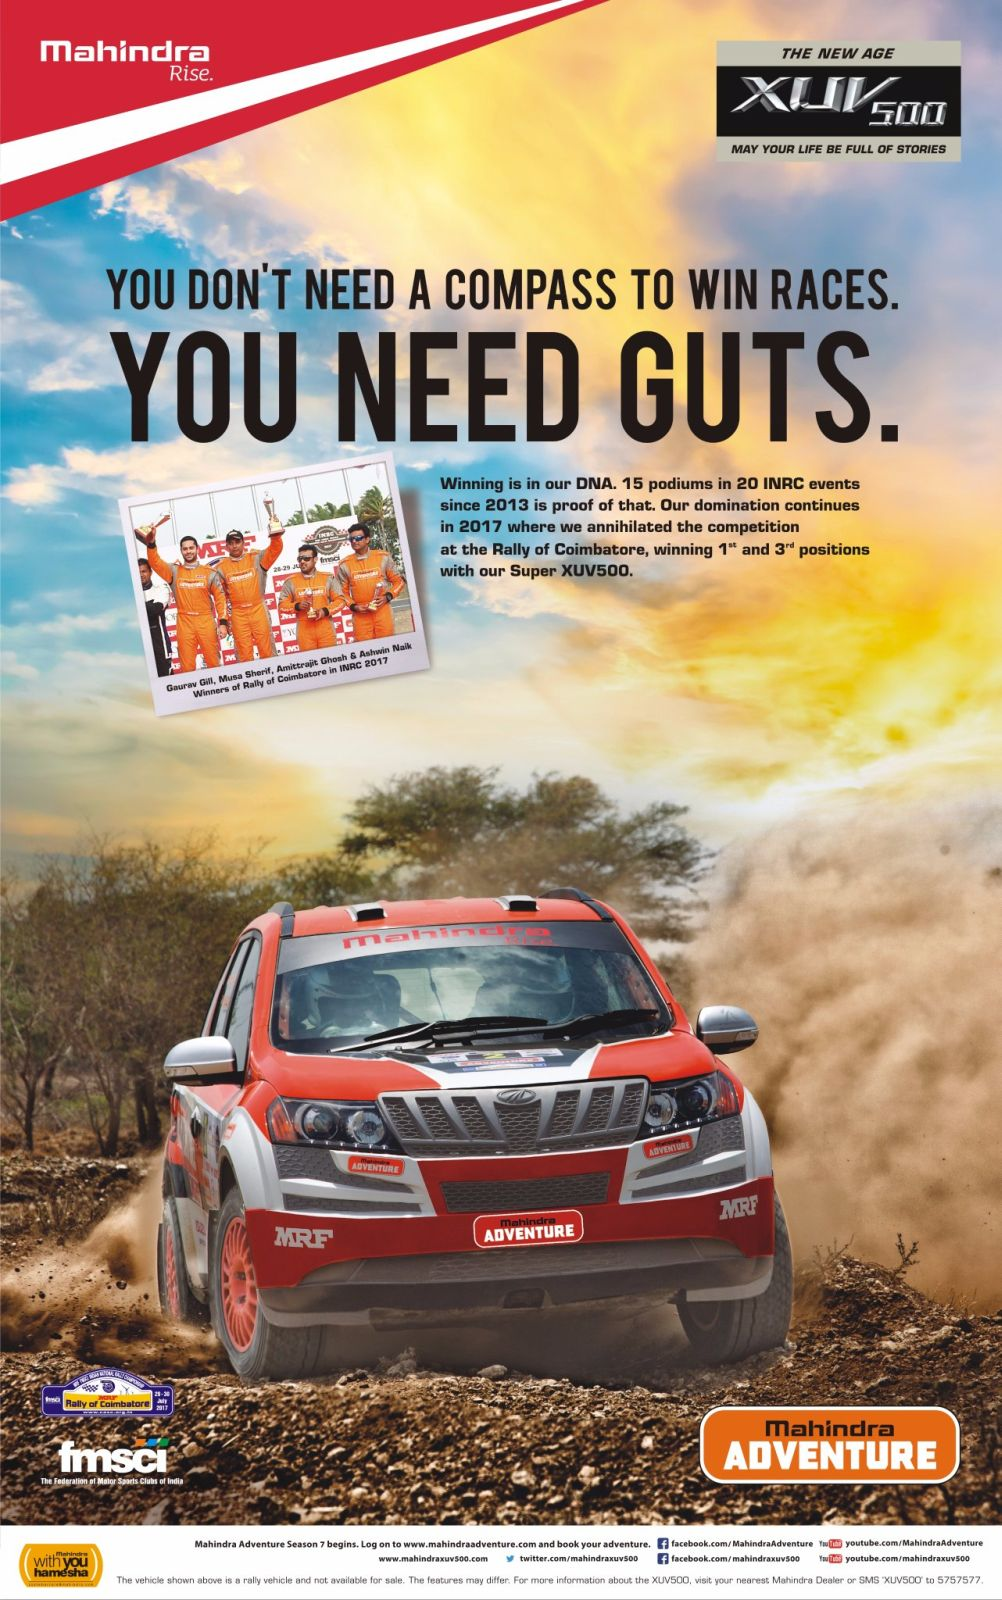 Mahindra-XUV-500-takes-a-dig-at-the-Jeep-Compass-1